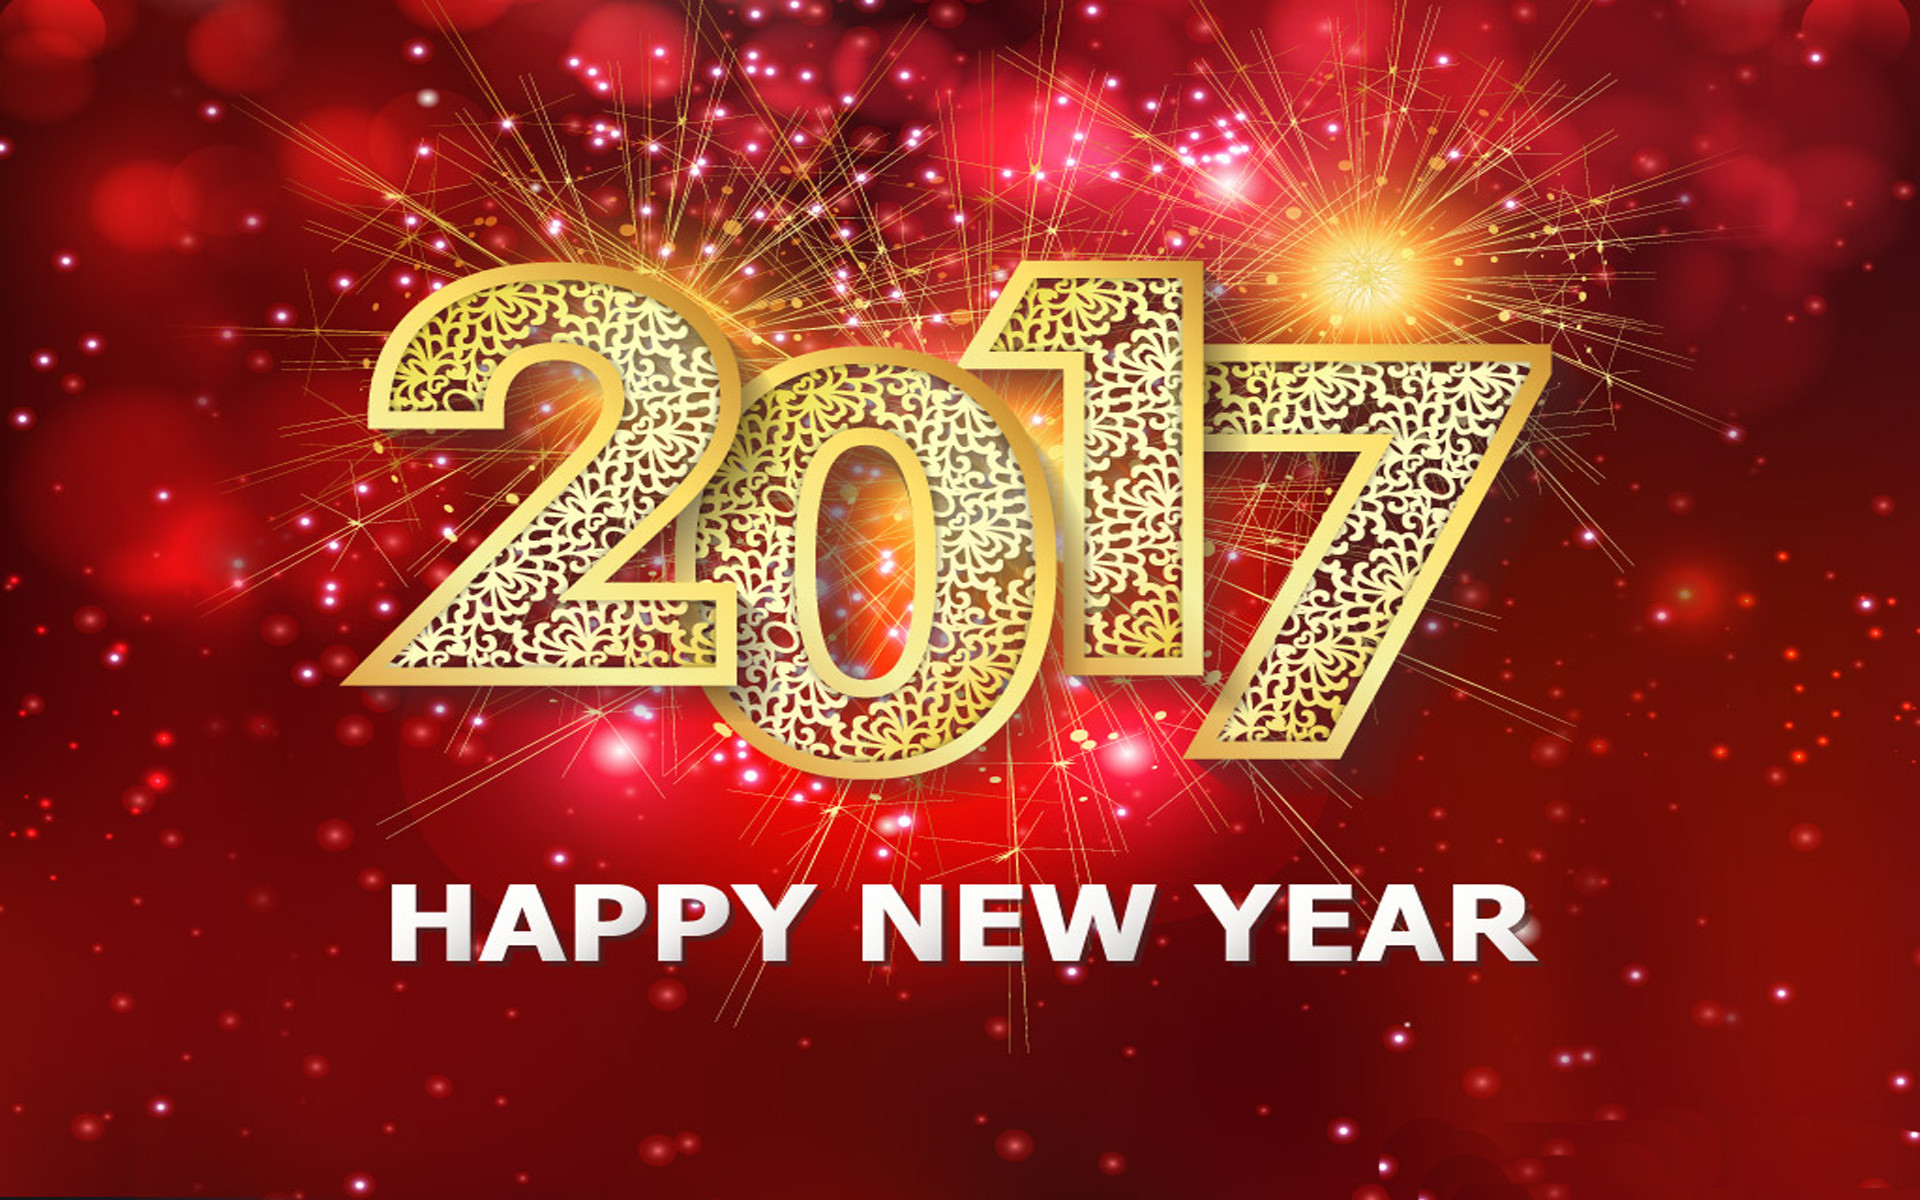 Holiday – New Year 2017 Holiday New Year Fireworks Happy New Year Wallpaper